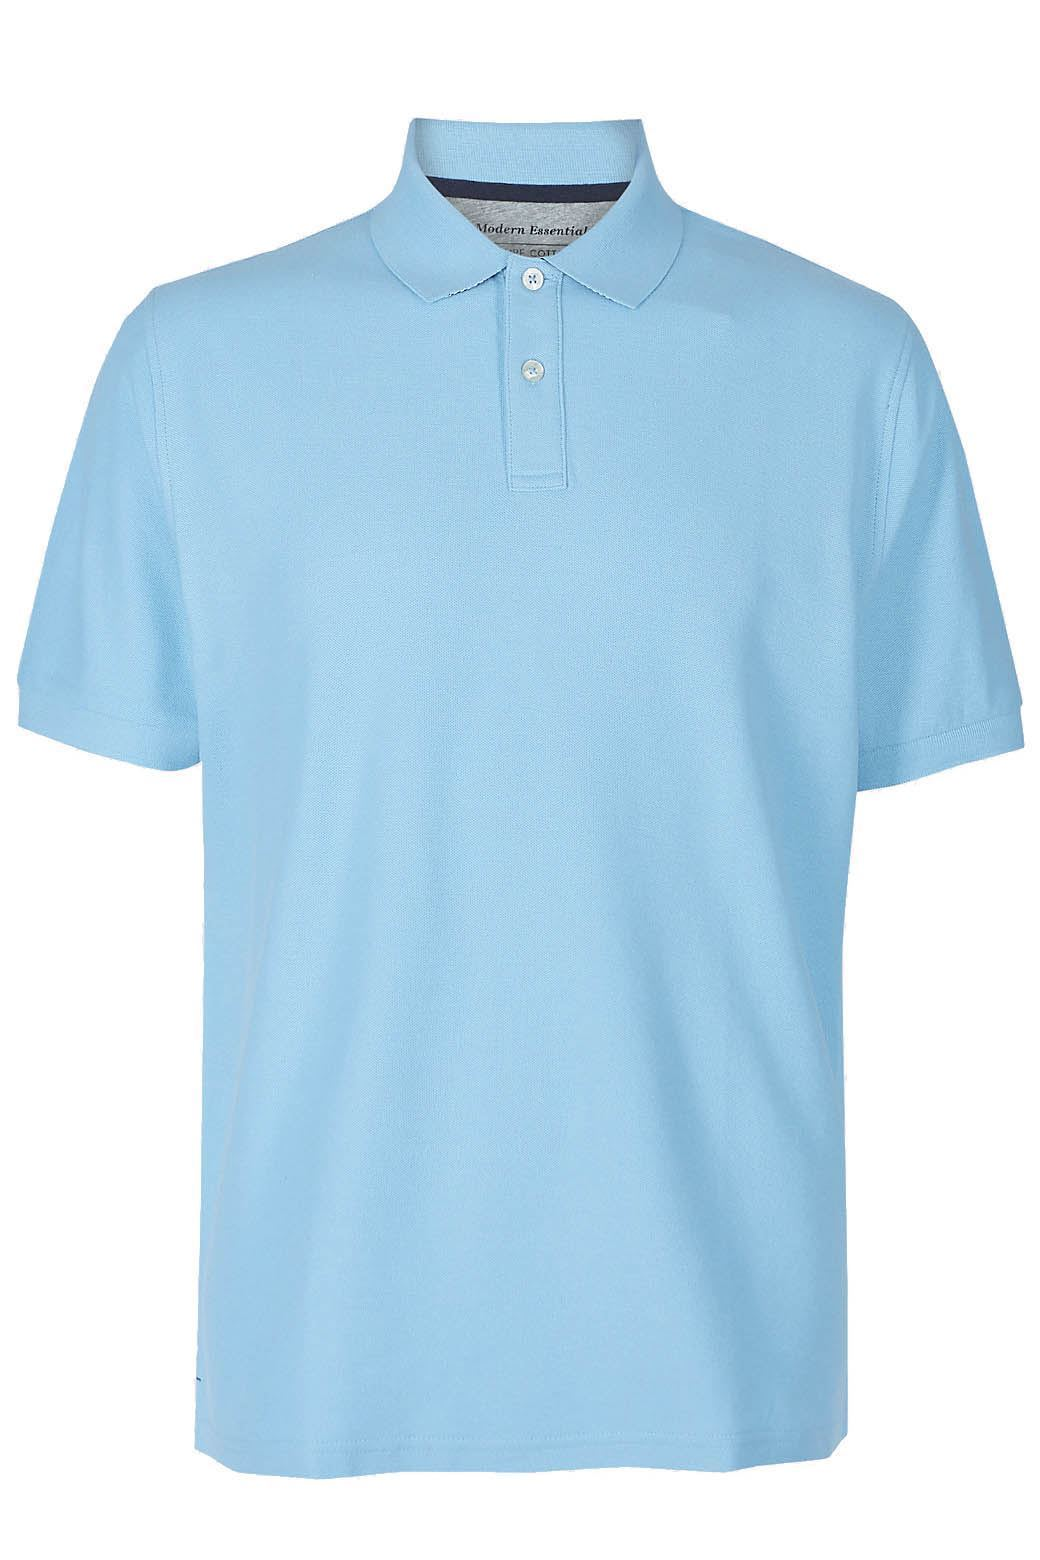 MARKS-amp-SPENCER-Mens-Classic-Cotton-Polo-Shirt-M-amp-S-All-Colours-and-Large-Sizes thumbnail 21